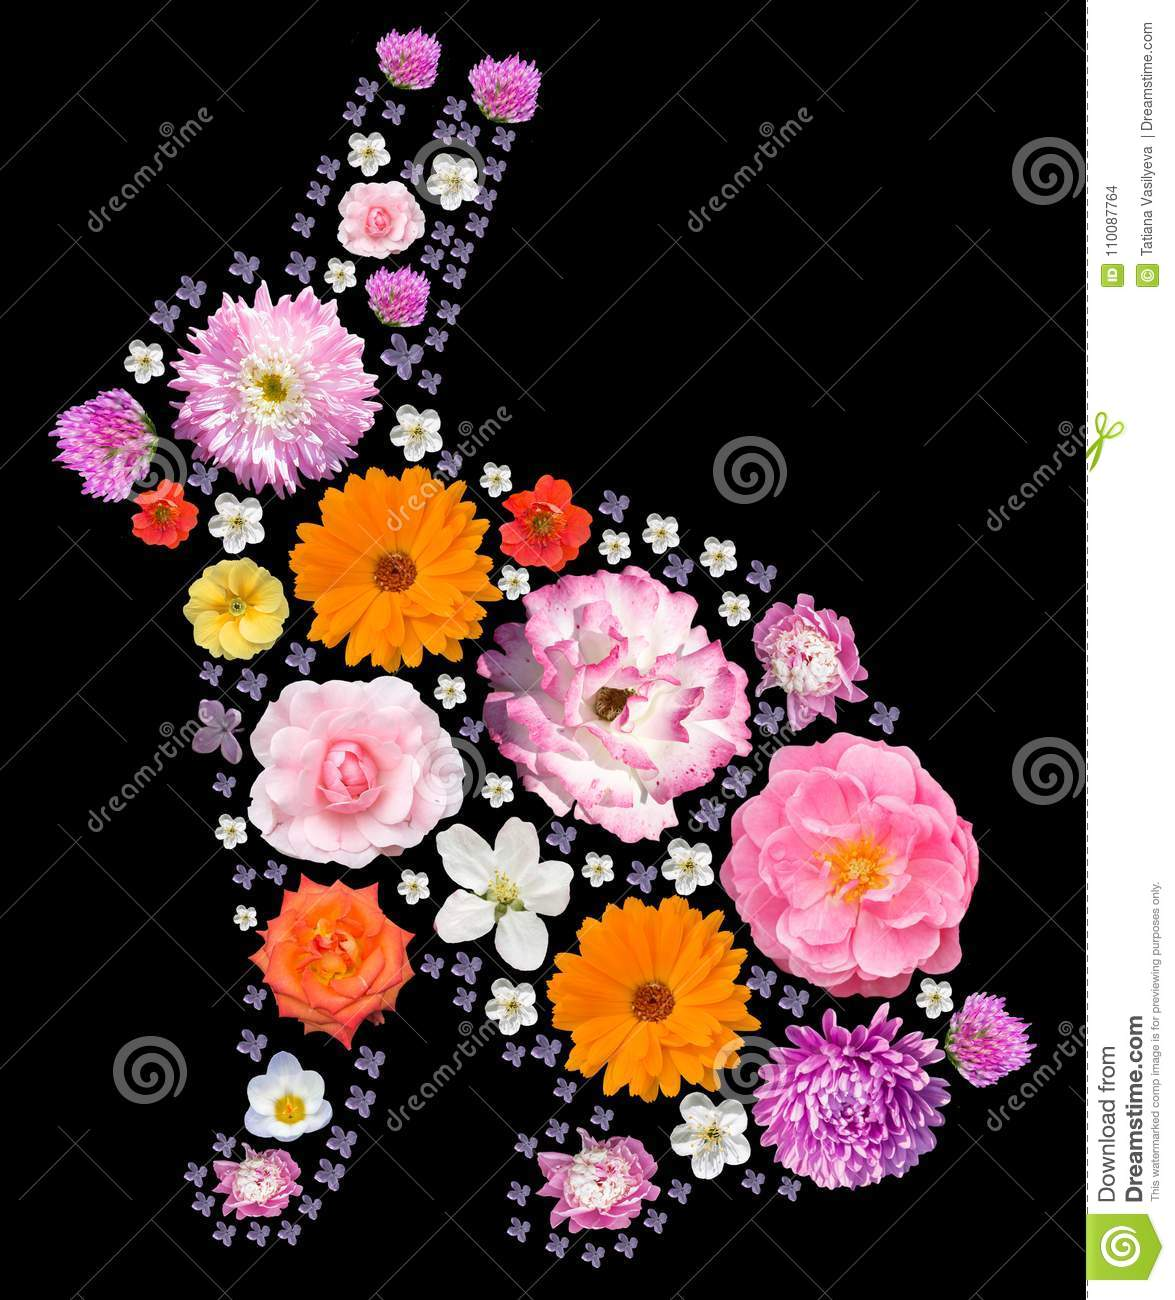 Easter rabbit silhouette with floral pattern.